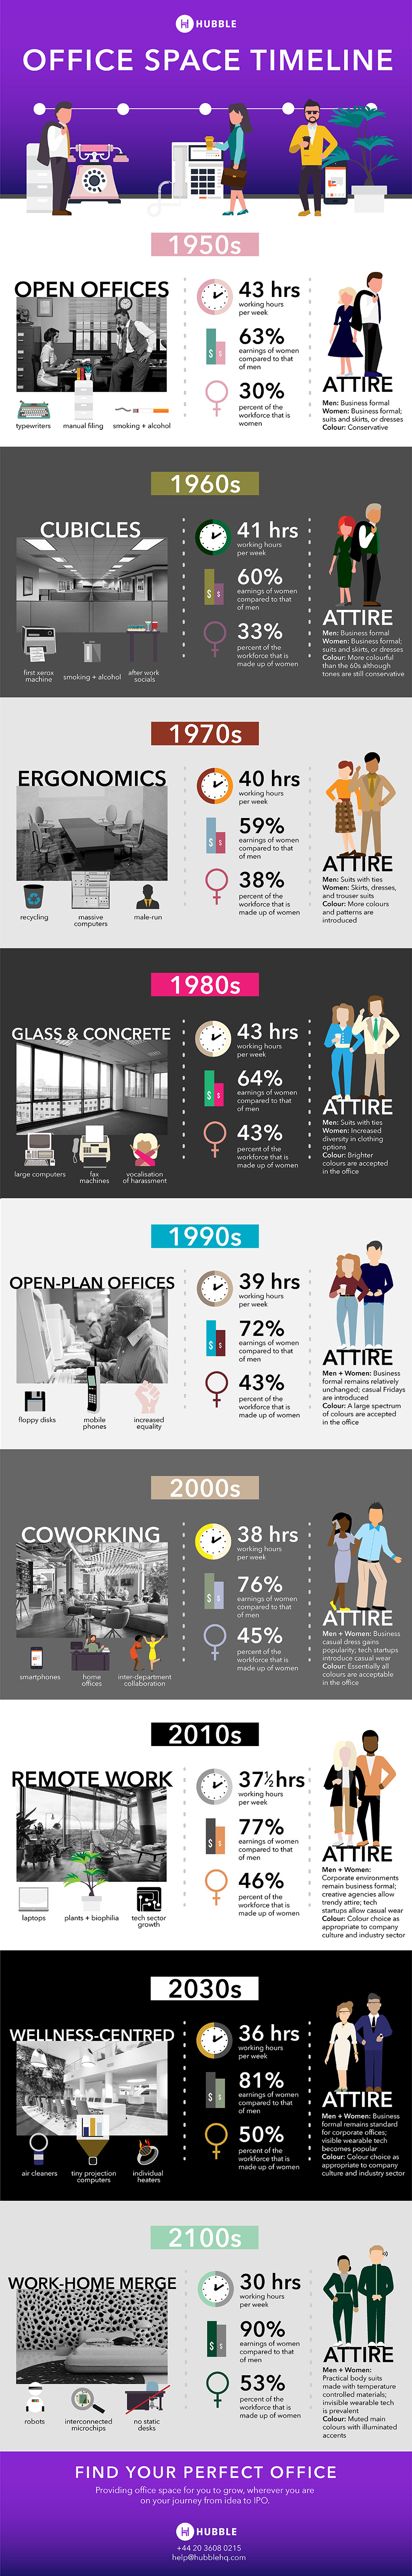 Evolution of the Office Space: A Reflection of Social Revolutions - Infographic